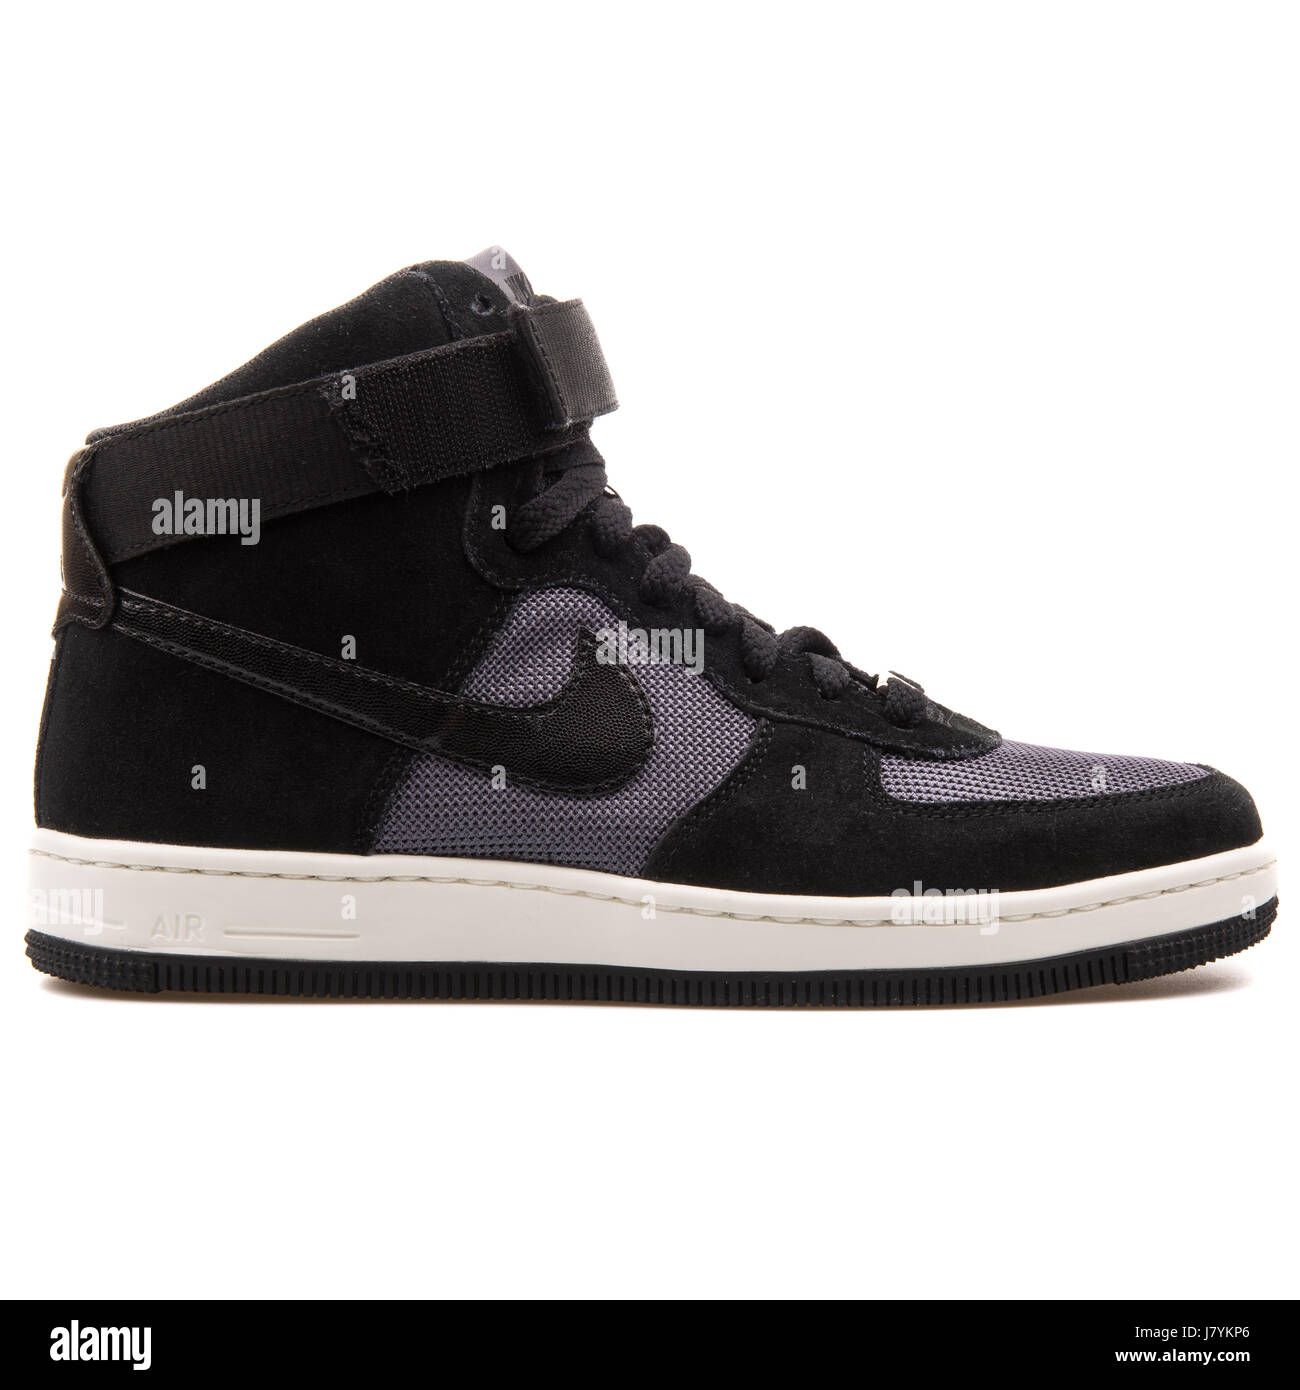 huge selection of 42eb4 f1248 Nike W AF1 Ultra Force Mid Women's High Black Sneakers ...